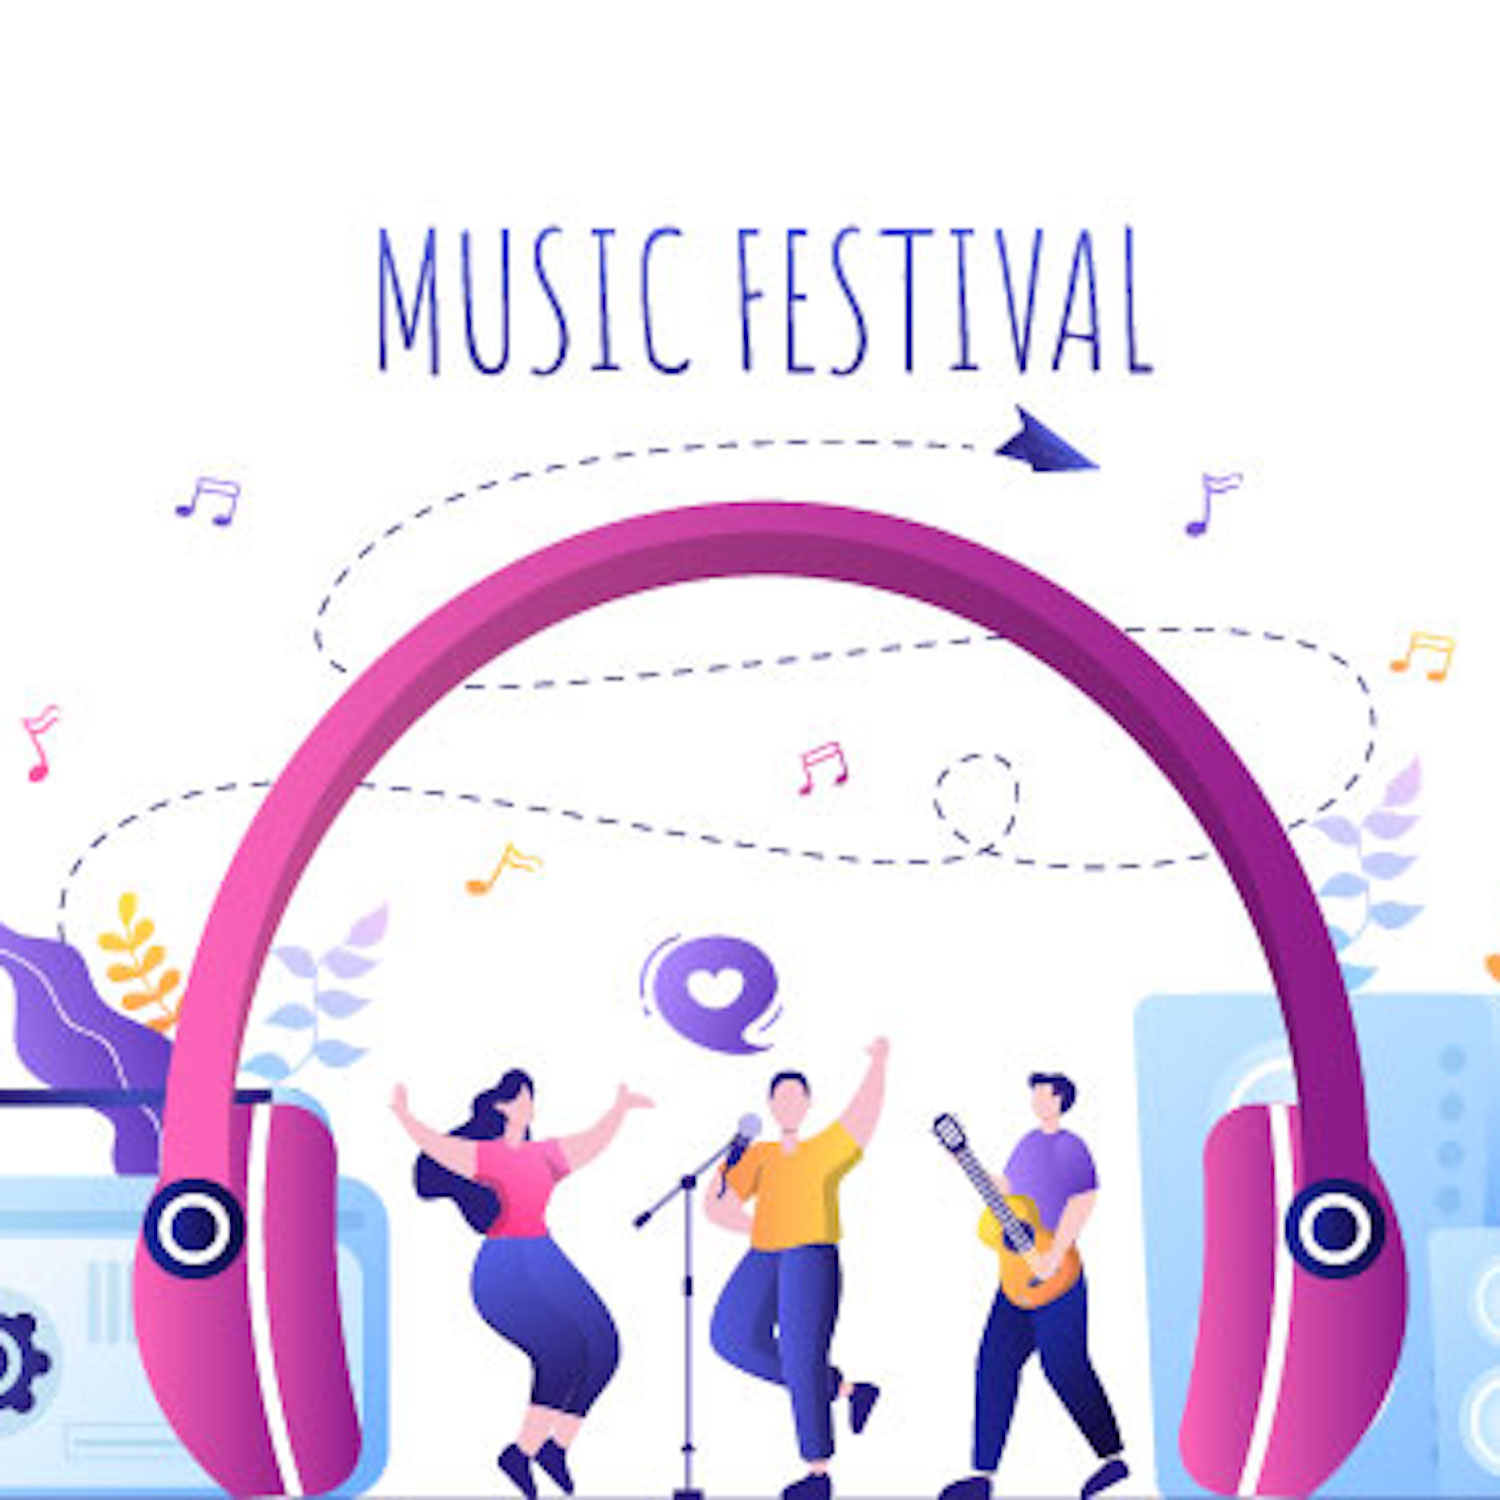 20 Music Festival Live Singing Performance Vector Illustration preview image,